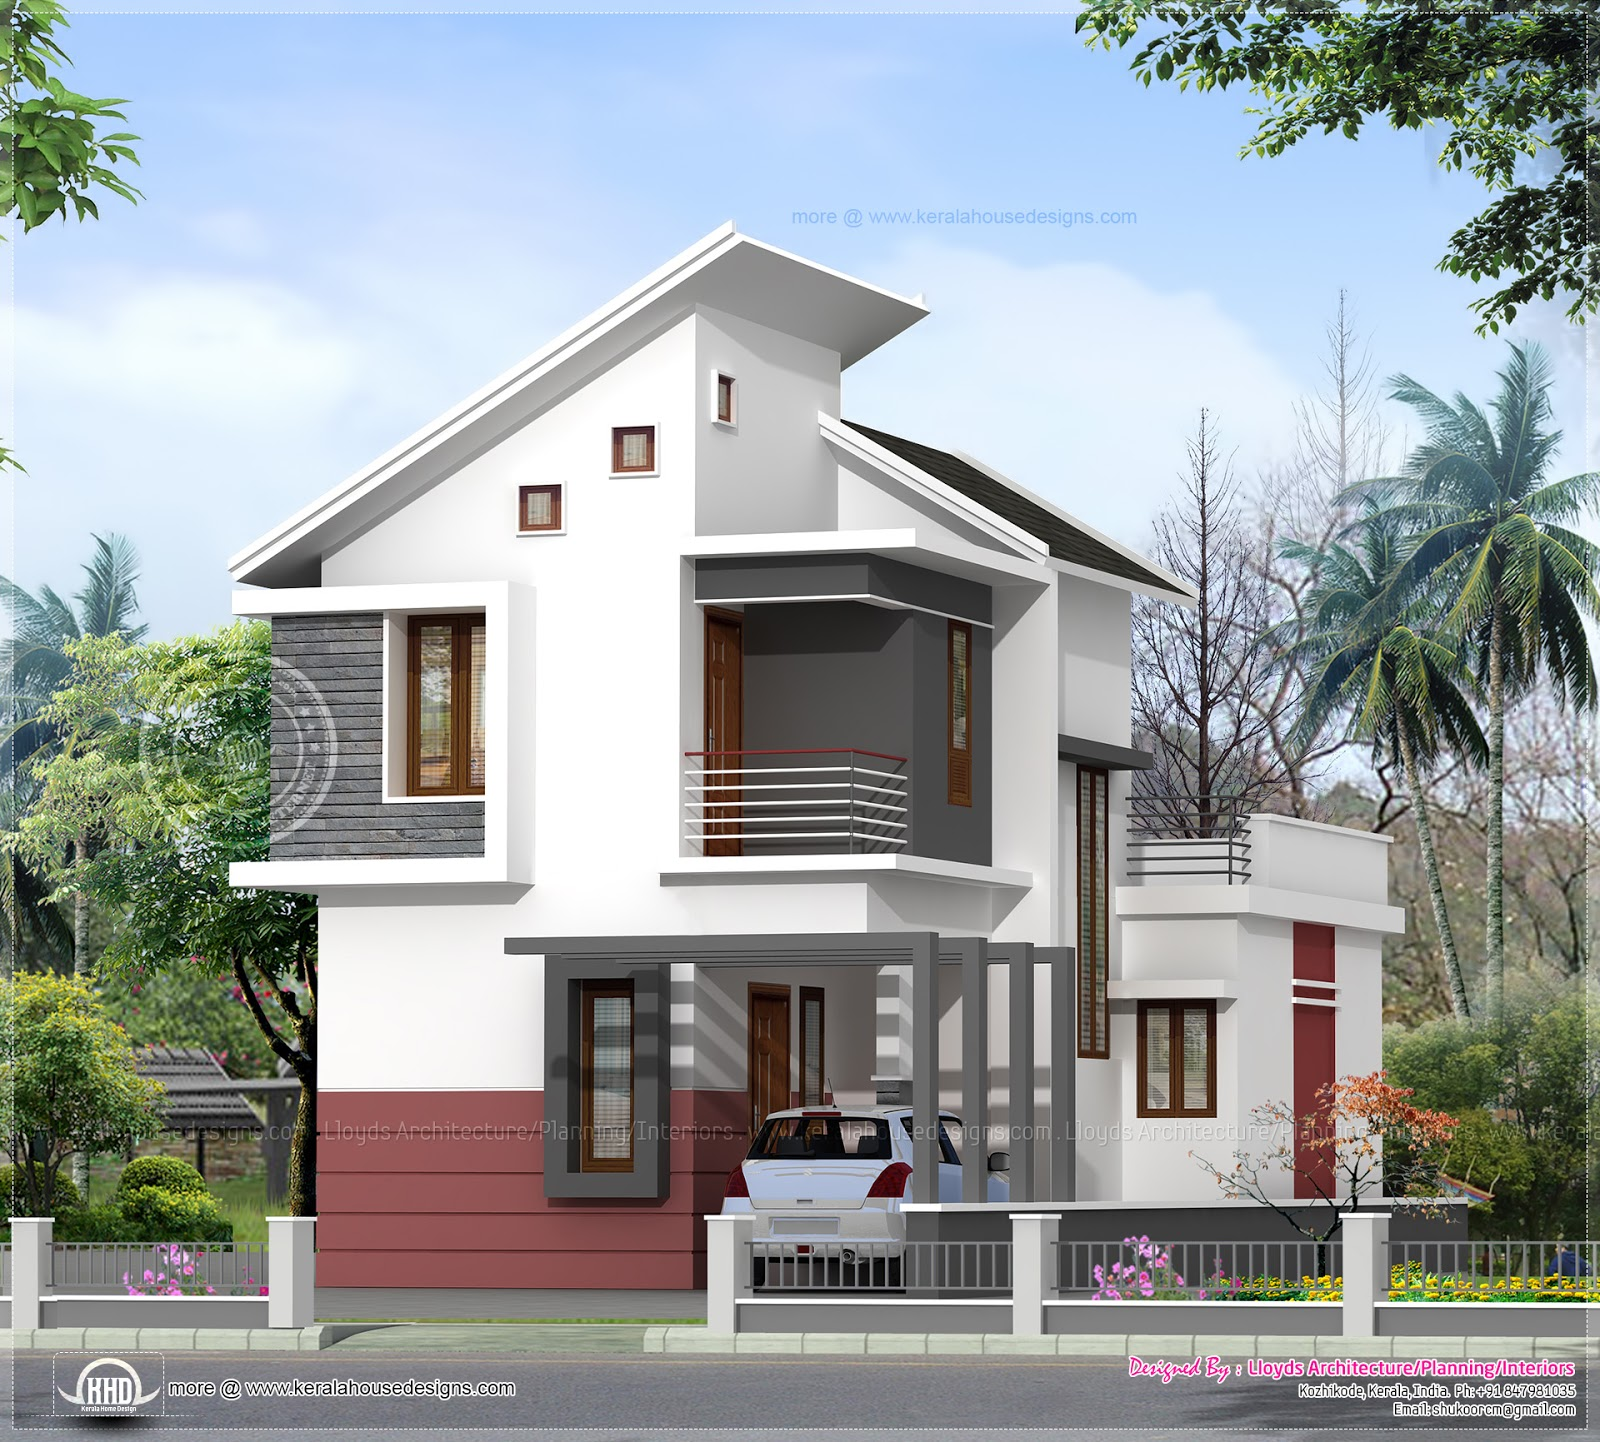 1197 sq ft 3 bedroom villa in 3 cents plot home kerala plans for New model veedu photos